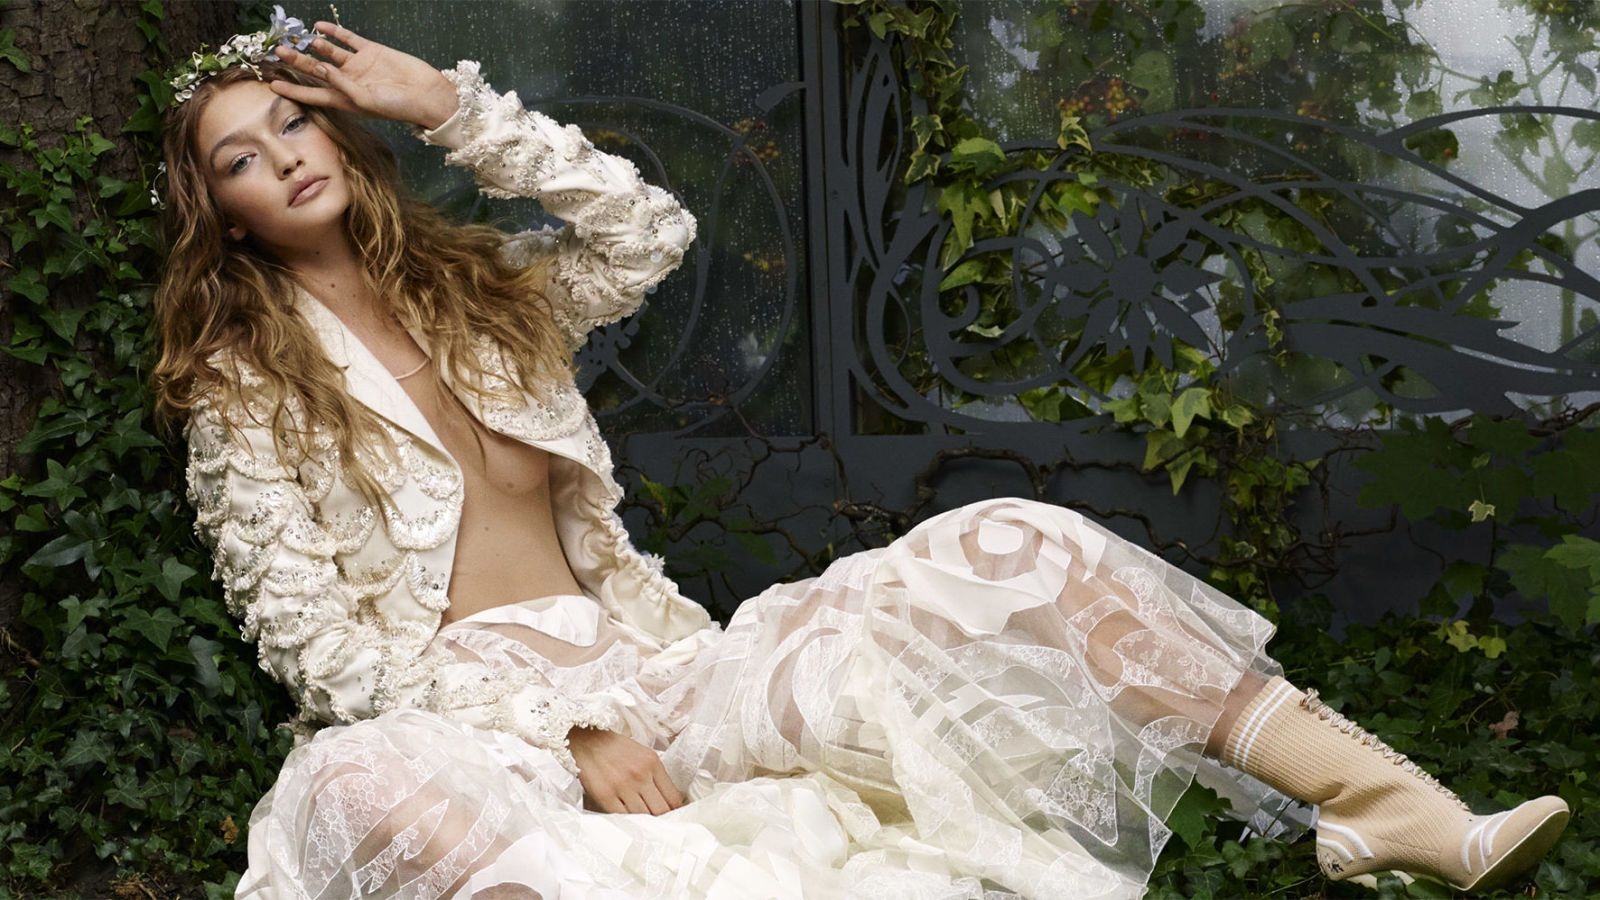 Gigi Hadid Wears Spring Couture for Karl Lagerfeld Photo Shoot - Gigi Hadid Cover Story